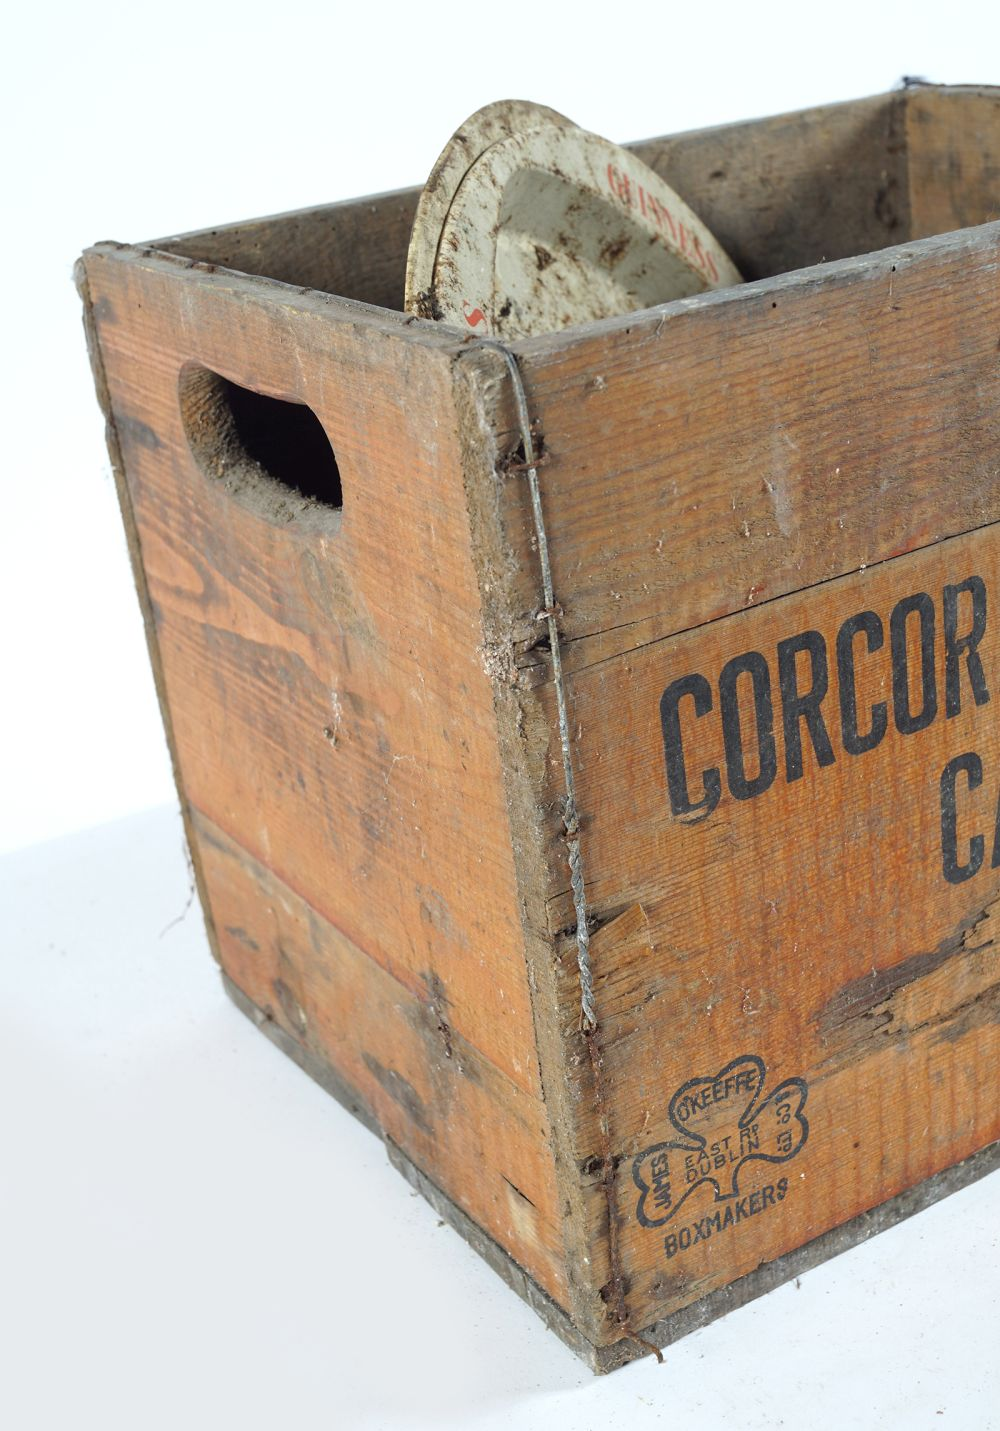 CORCORAN & CO CARLOW WOODEN CRATE - Image 2 of 2